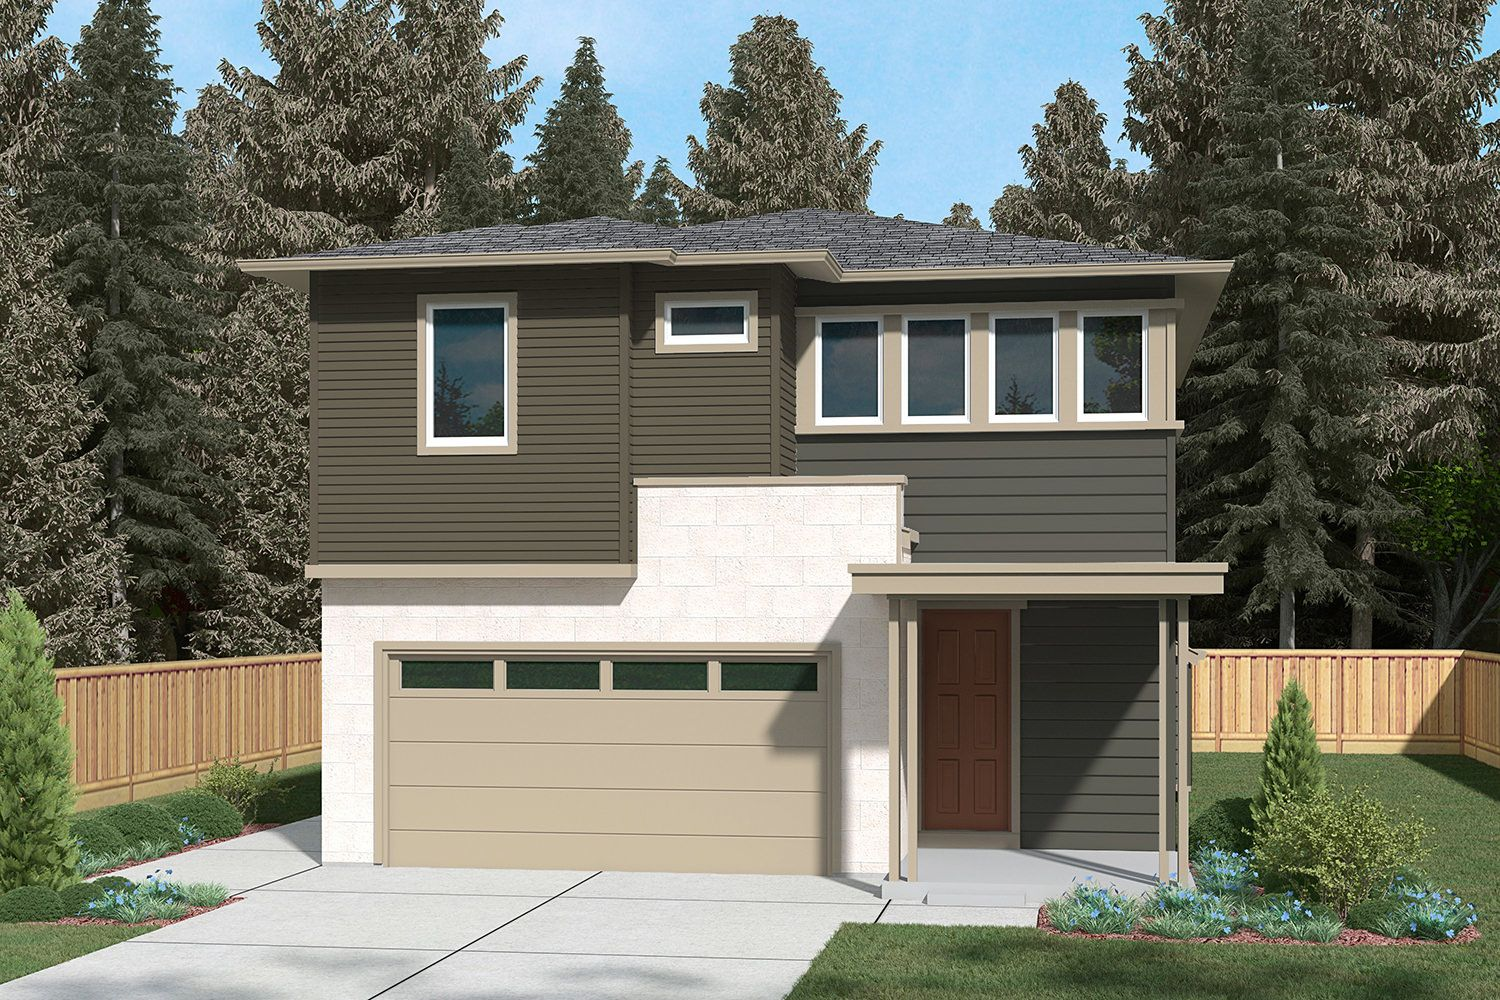 Homebuilder designs in maltby wa movenewhomes for Washington home builders